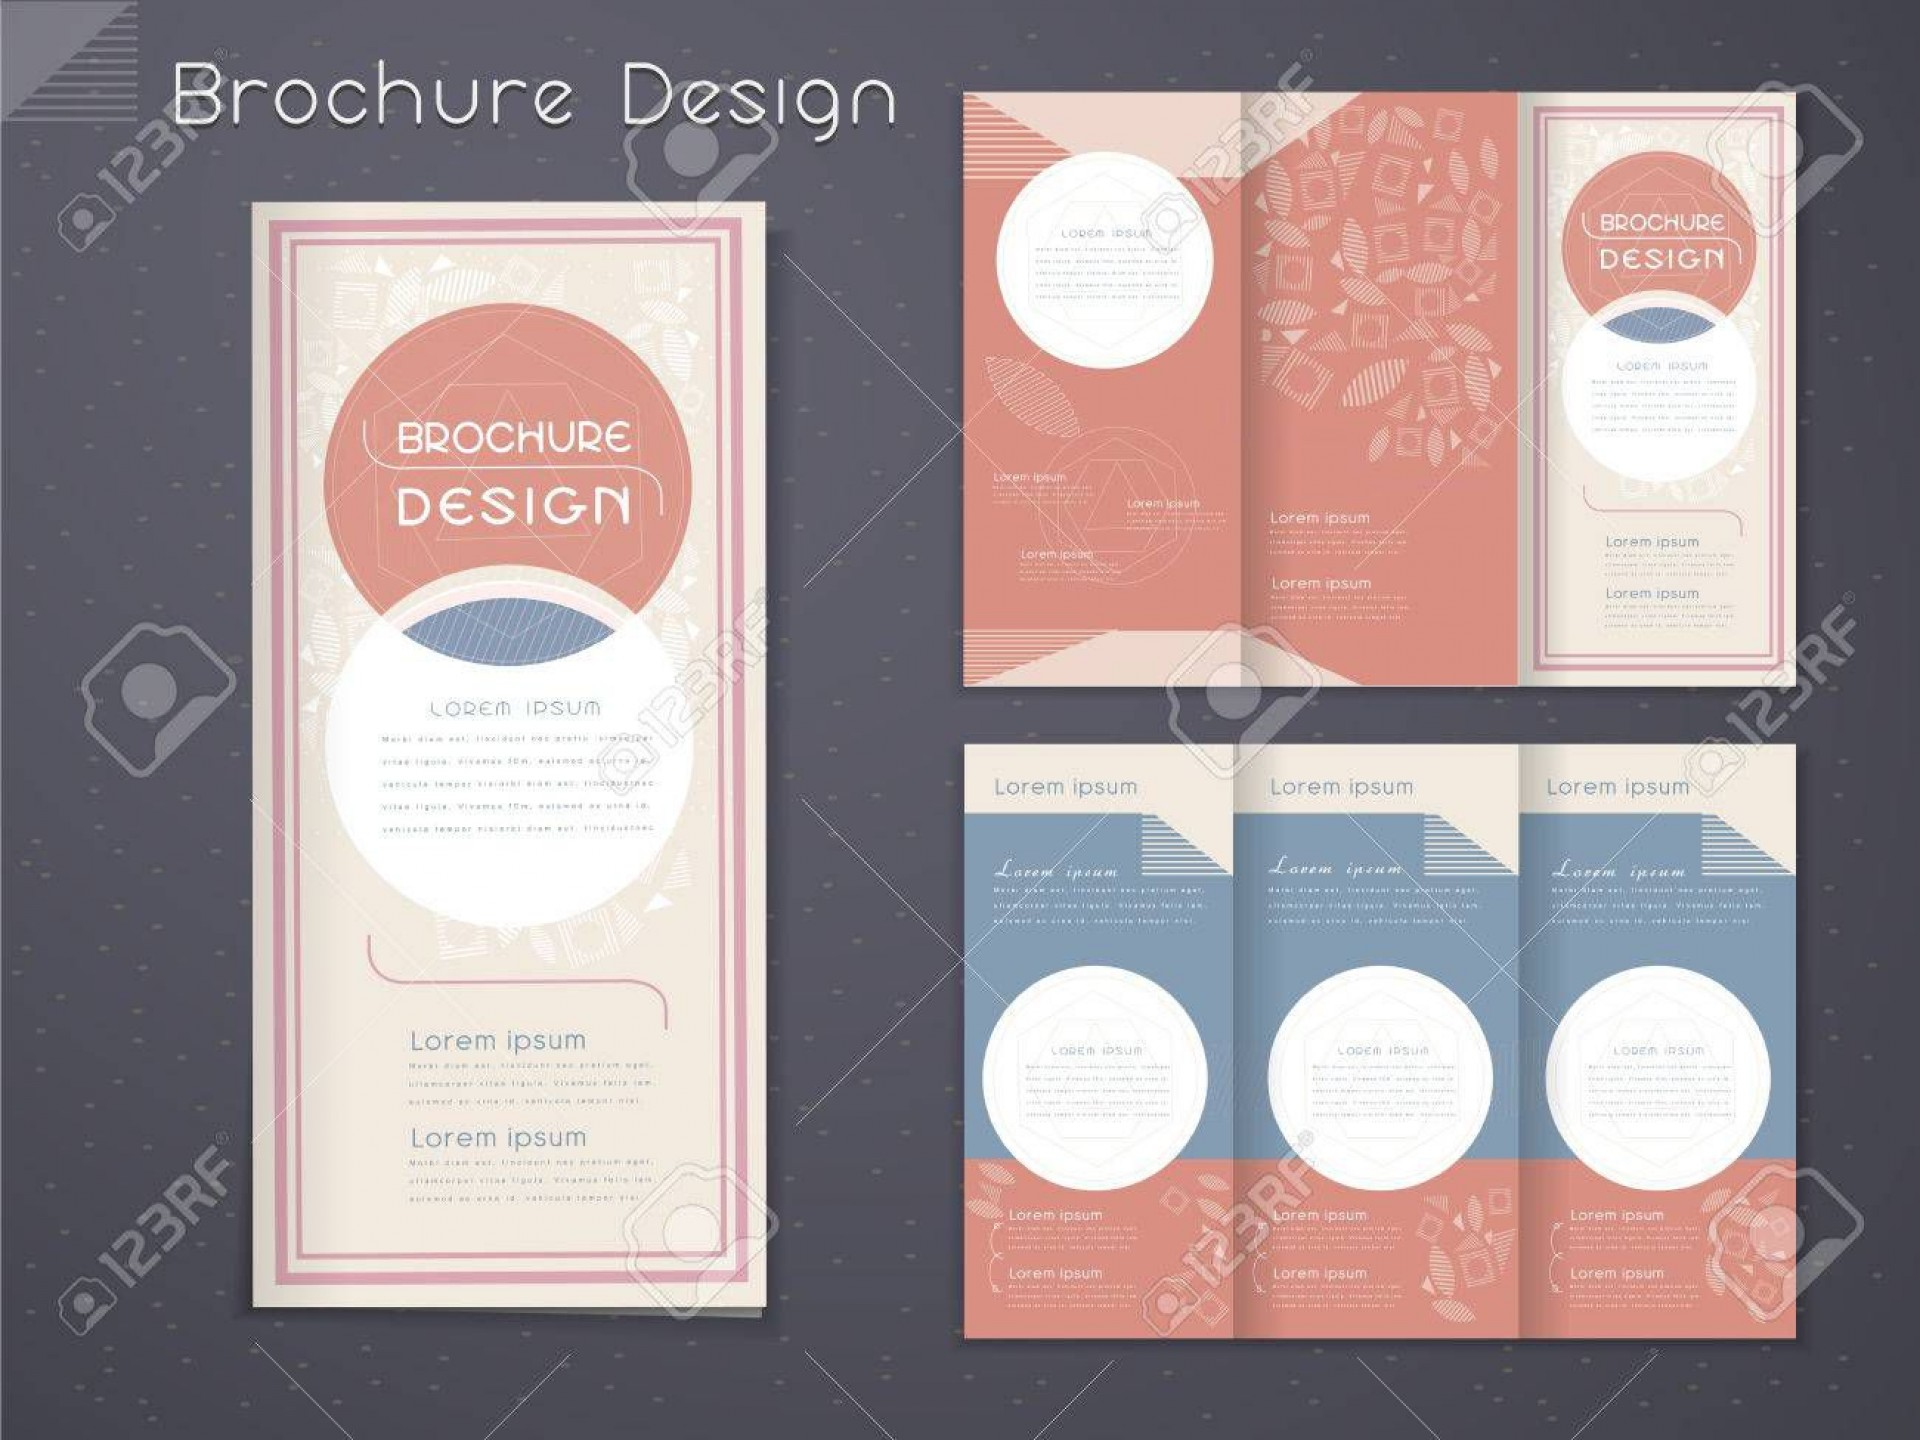 003 Awful 3 Fold Brochure Template Free Picture  Word Download1920